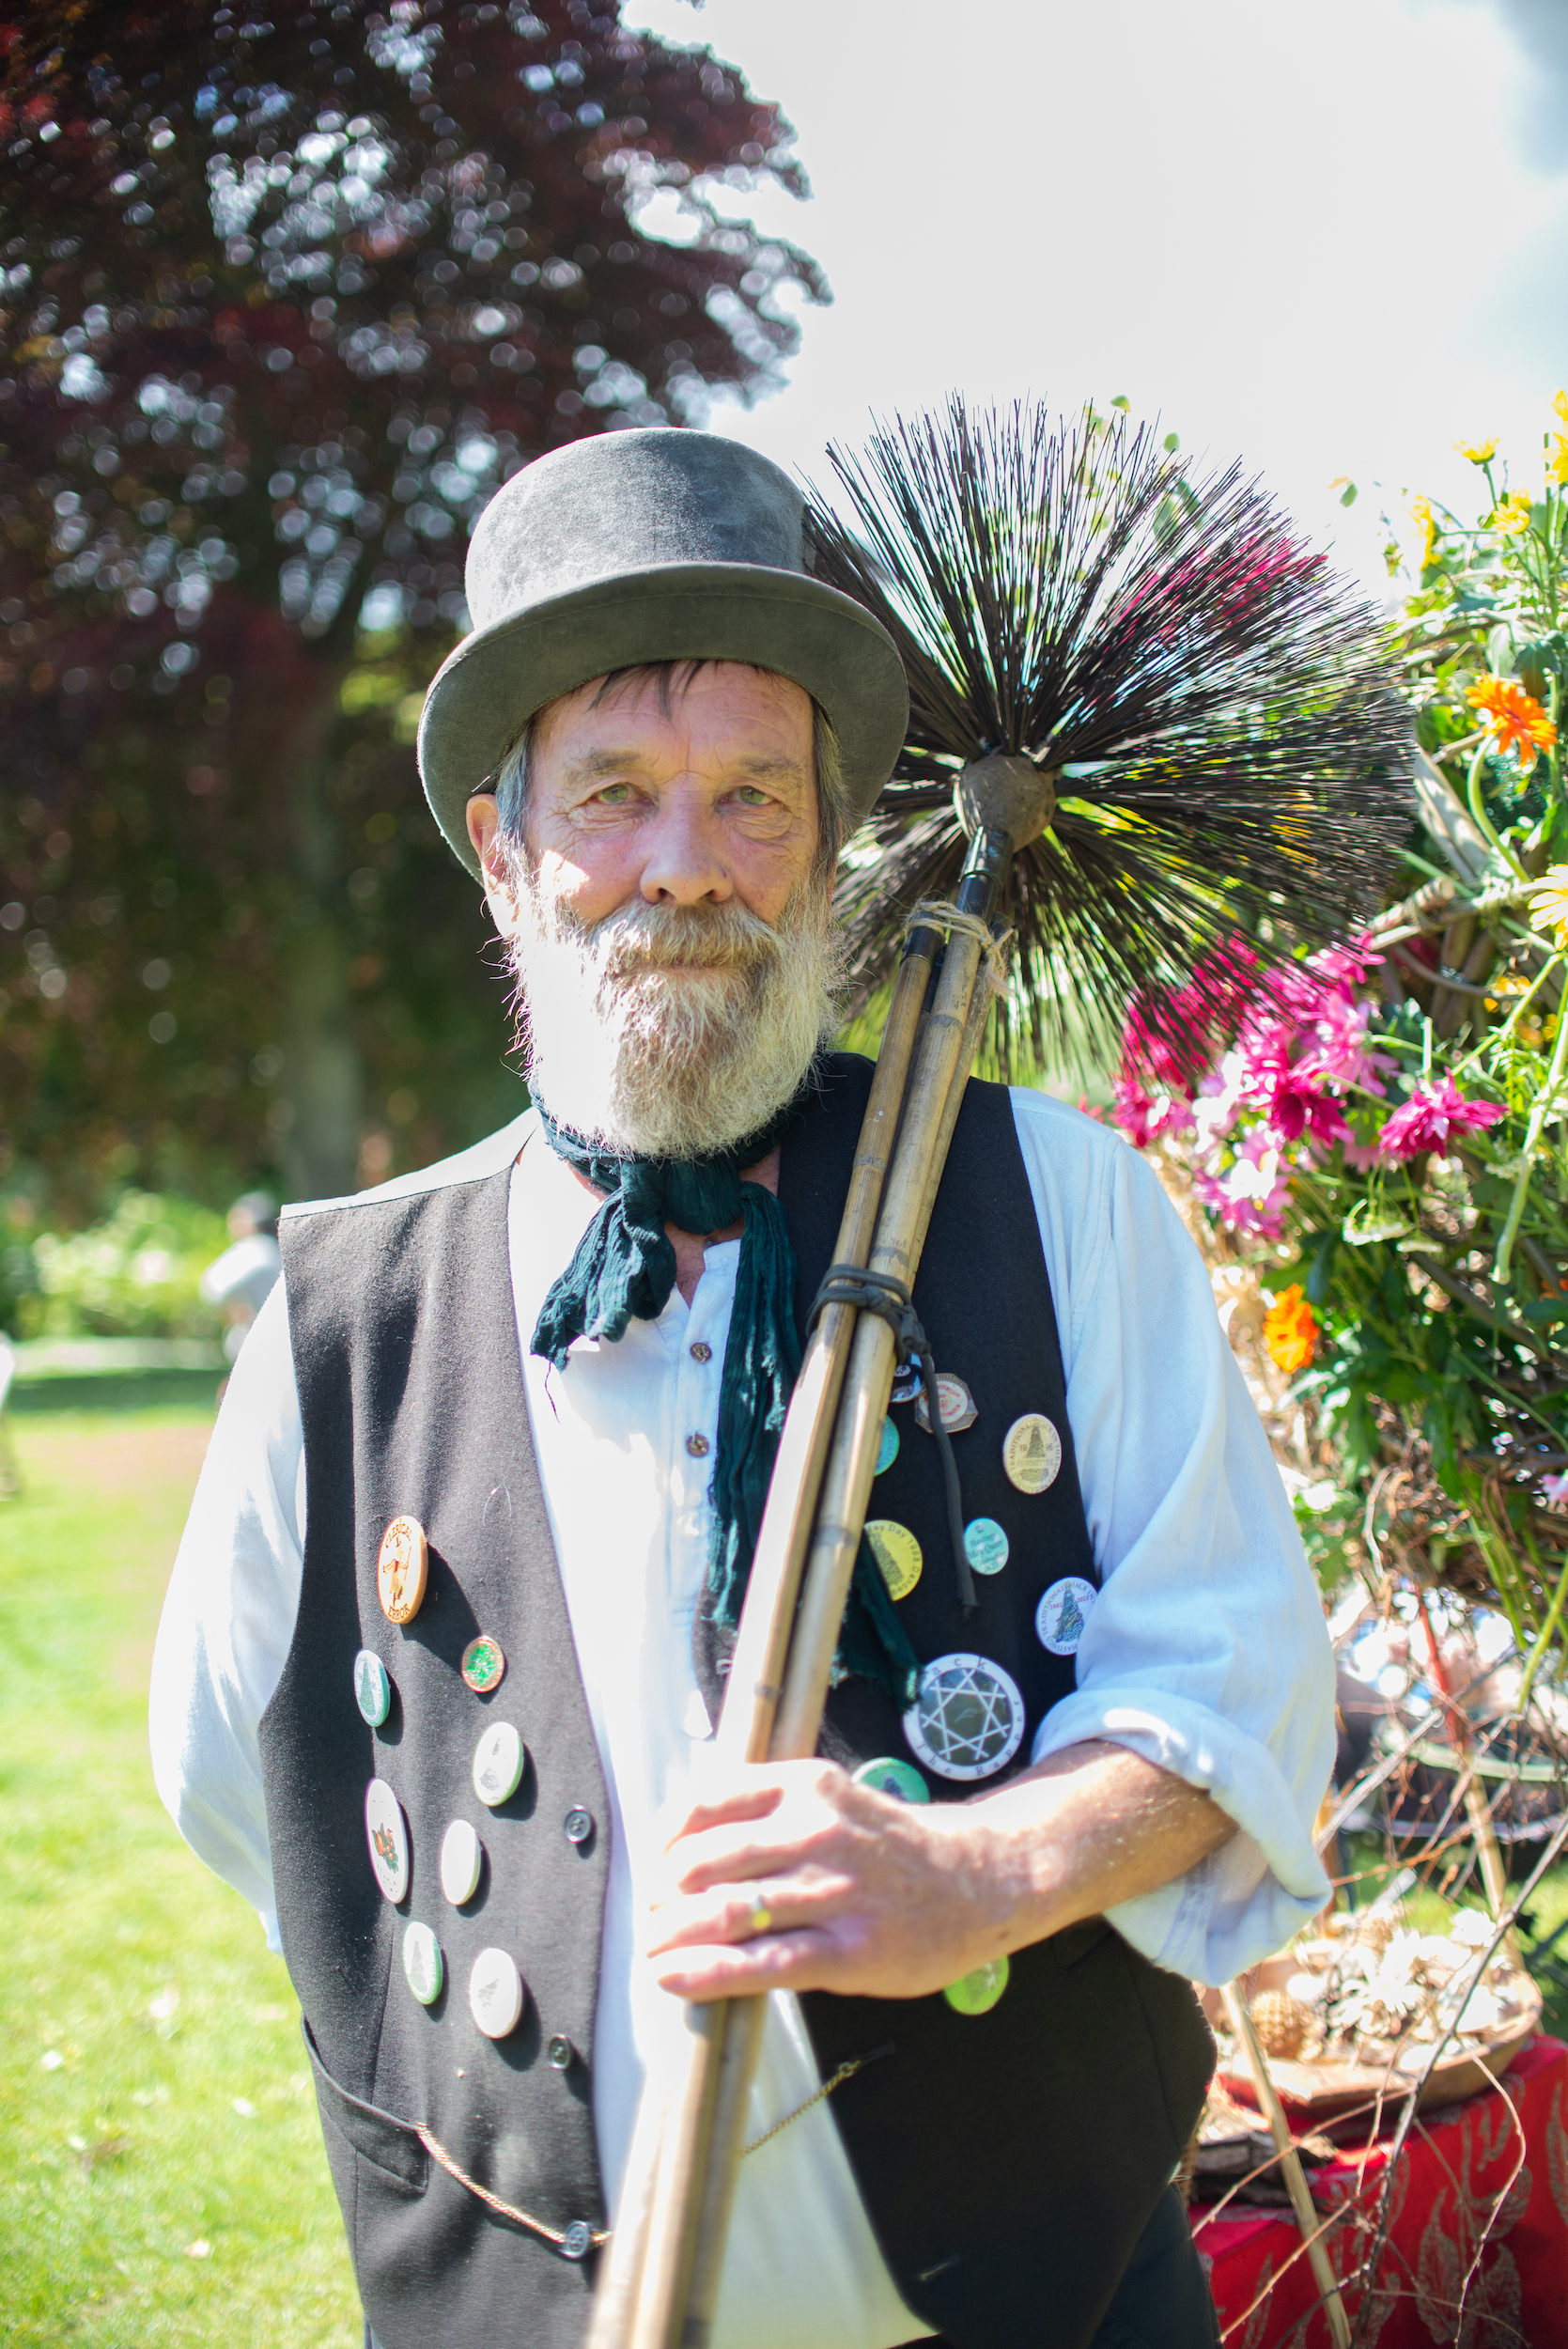 Barry Jones, Chimney Sweep